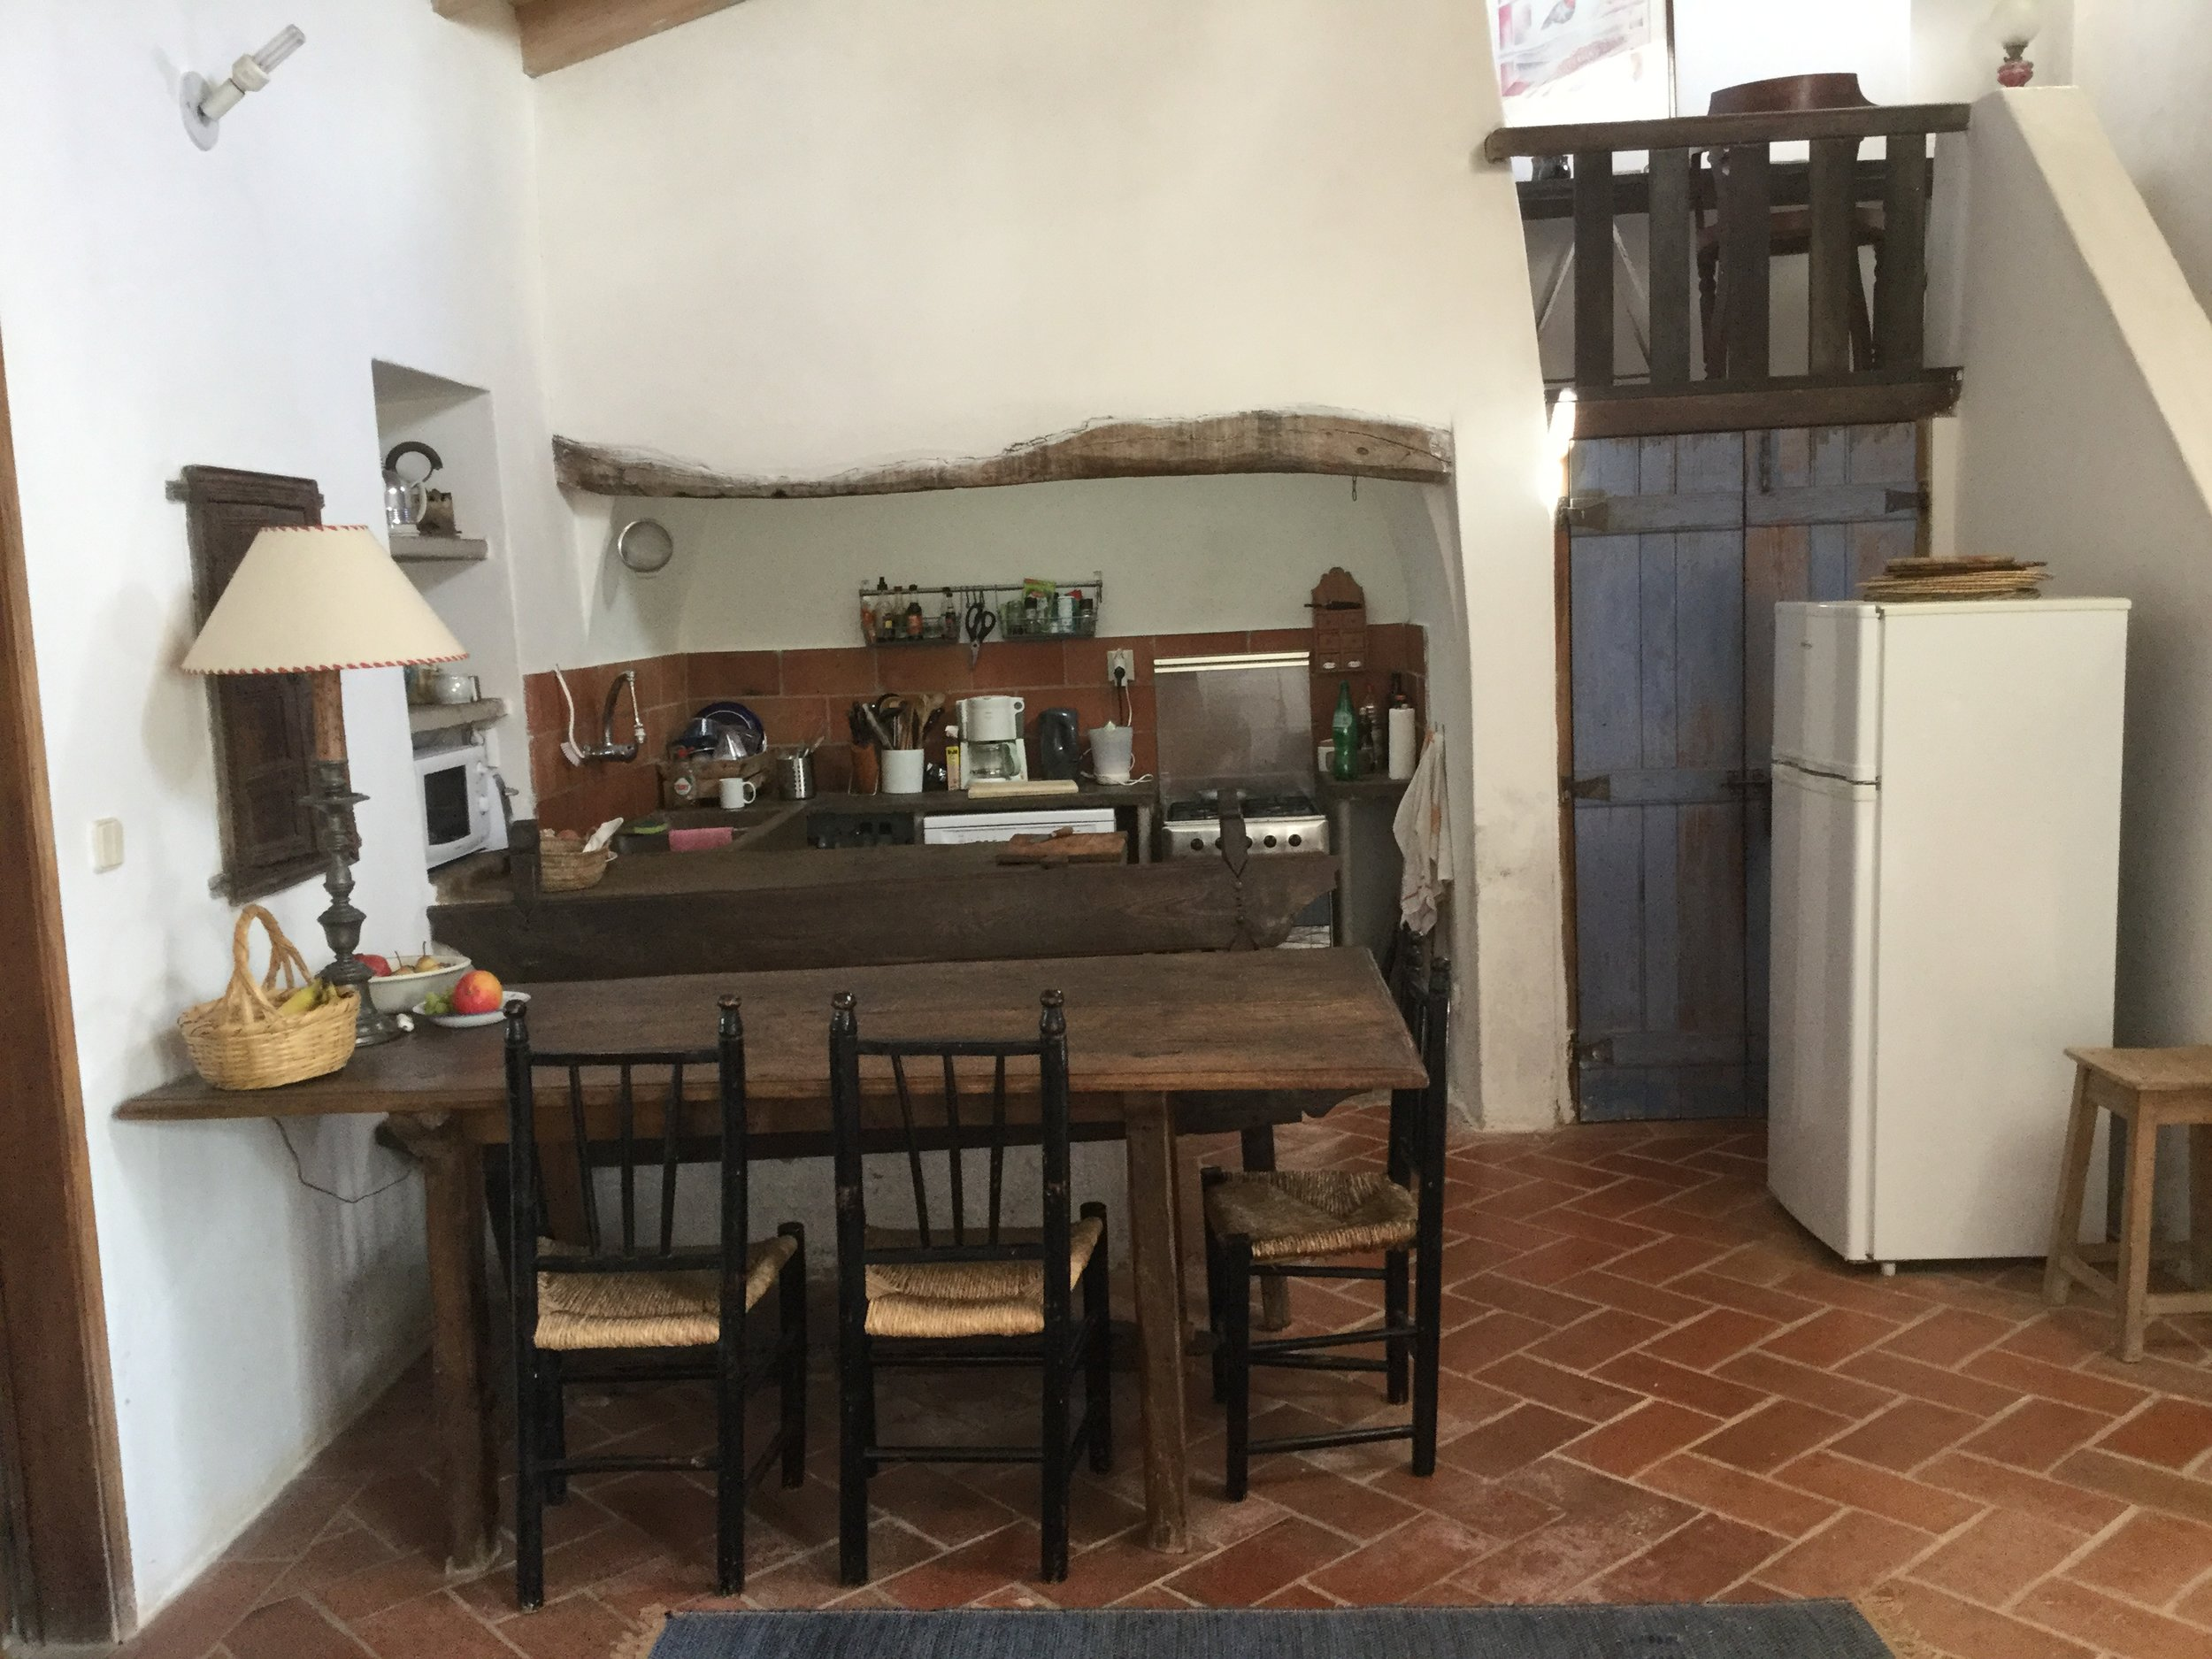 The kitchen, dining room and pantry